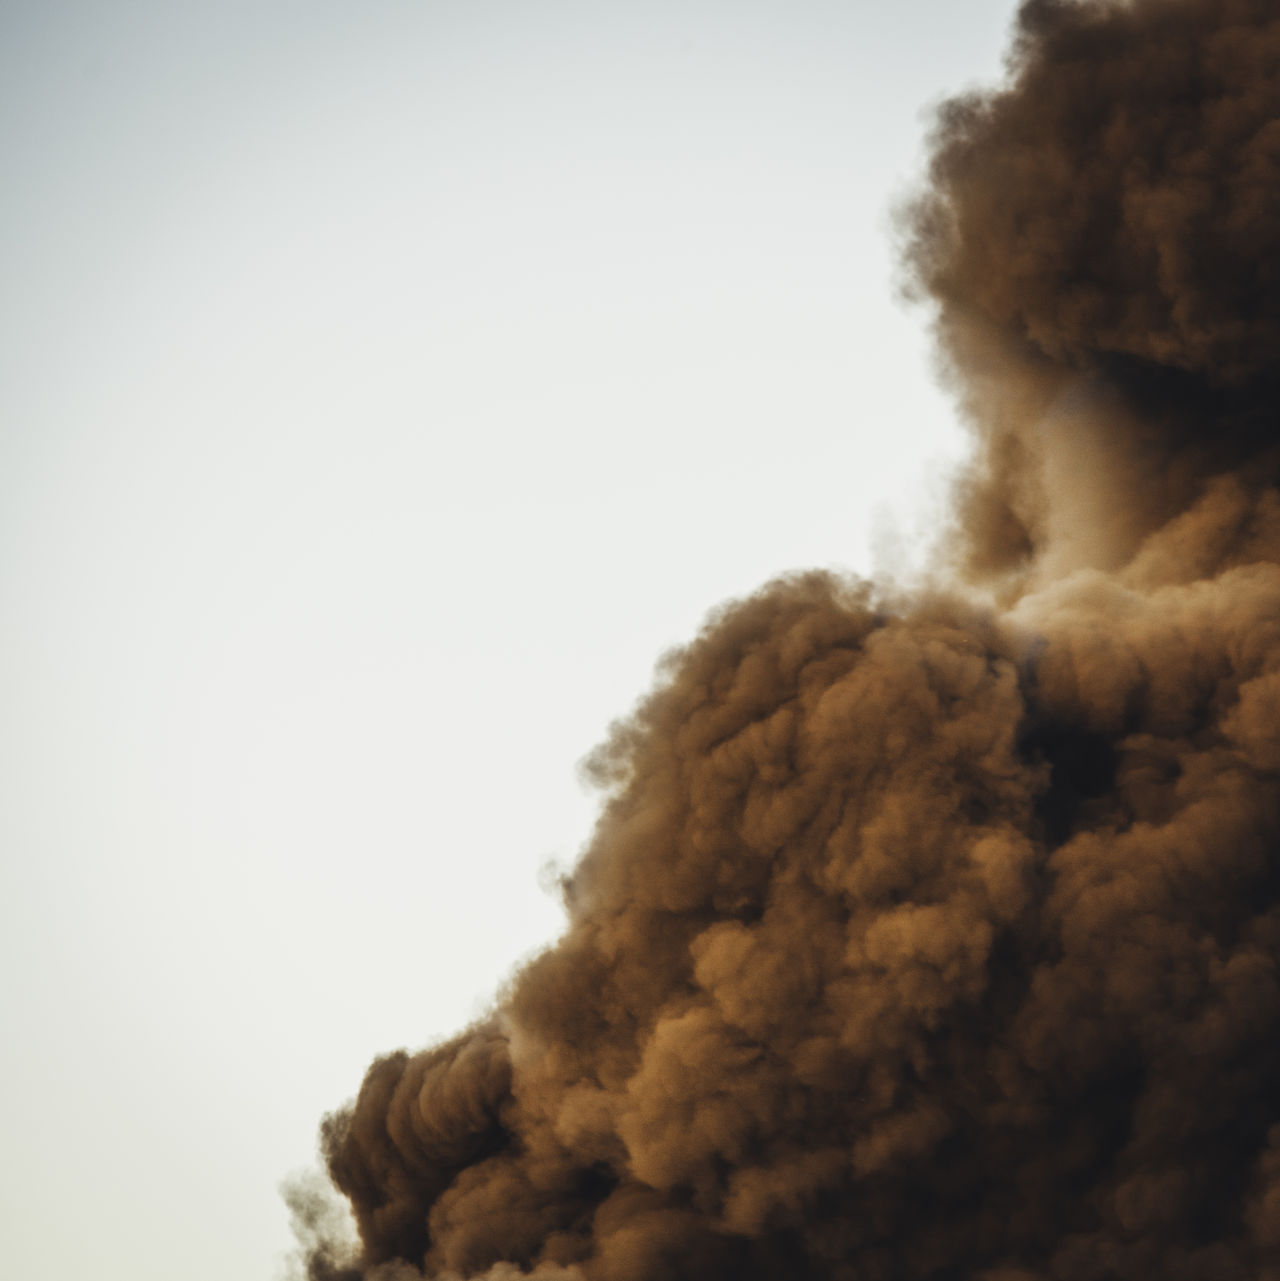 Low angle view of smoke explosion against clear sky